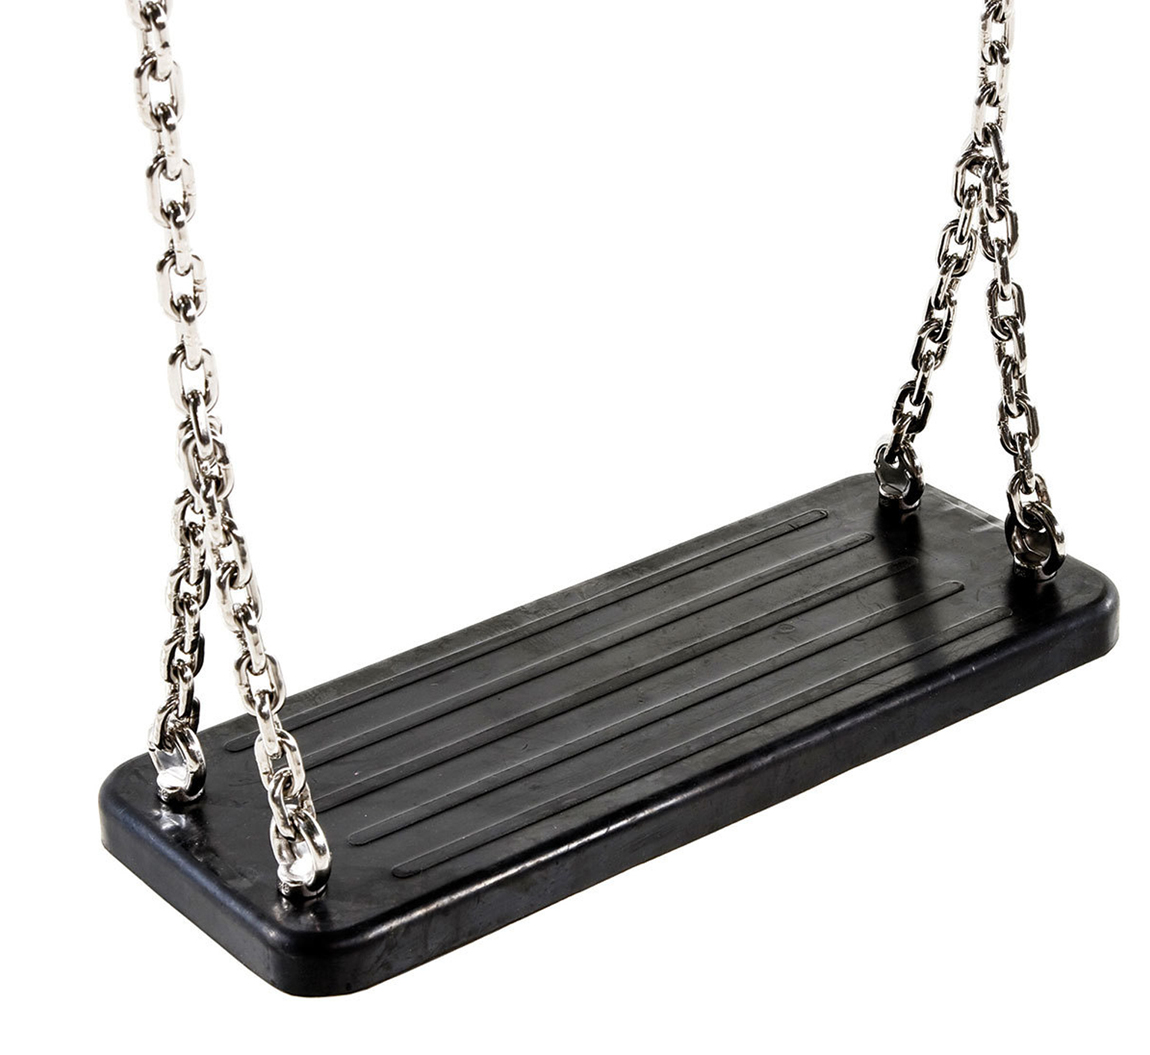 Rubber Swing Seat With Steel Chains Heavy Duty Rubber